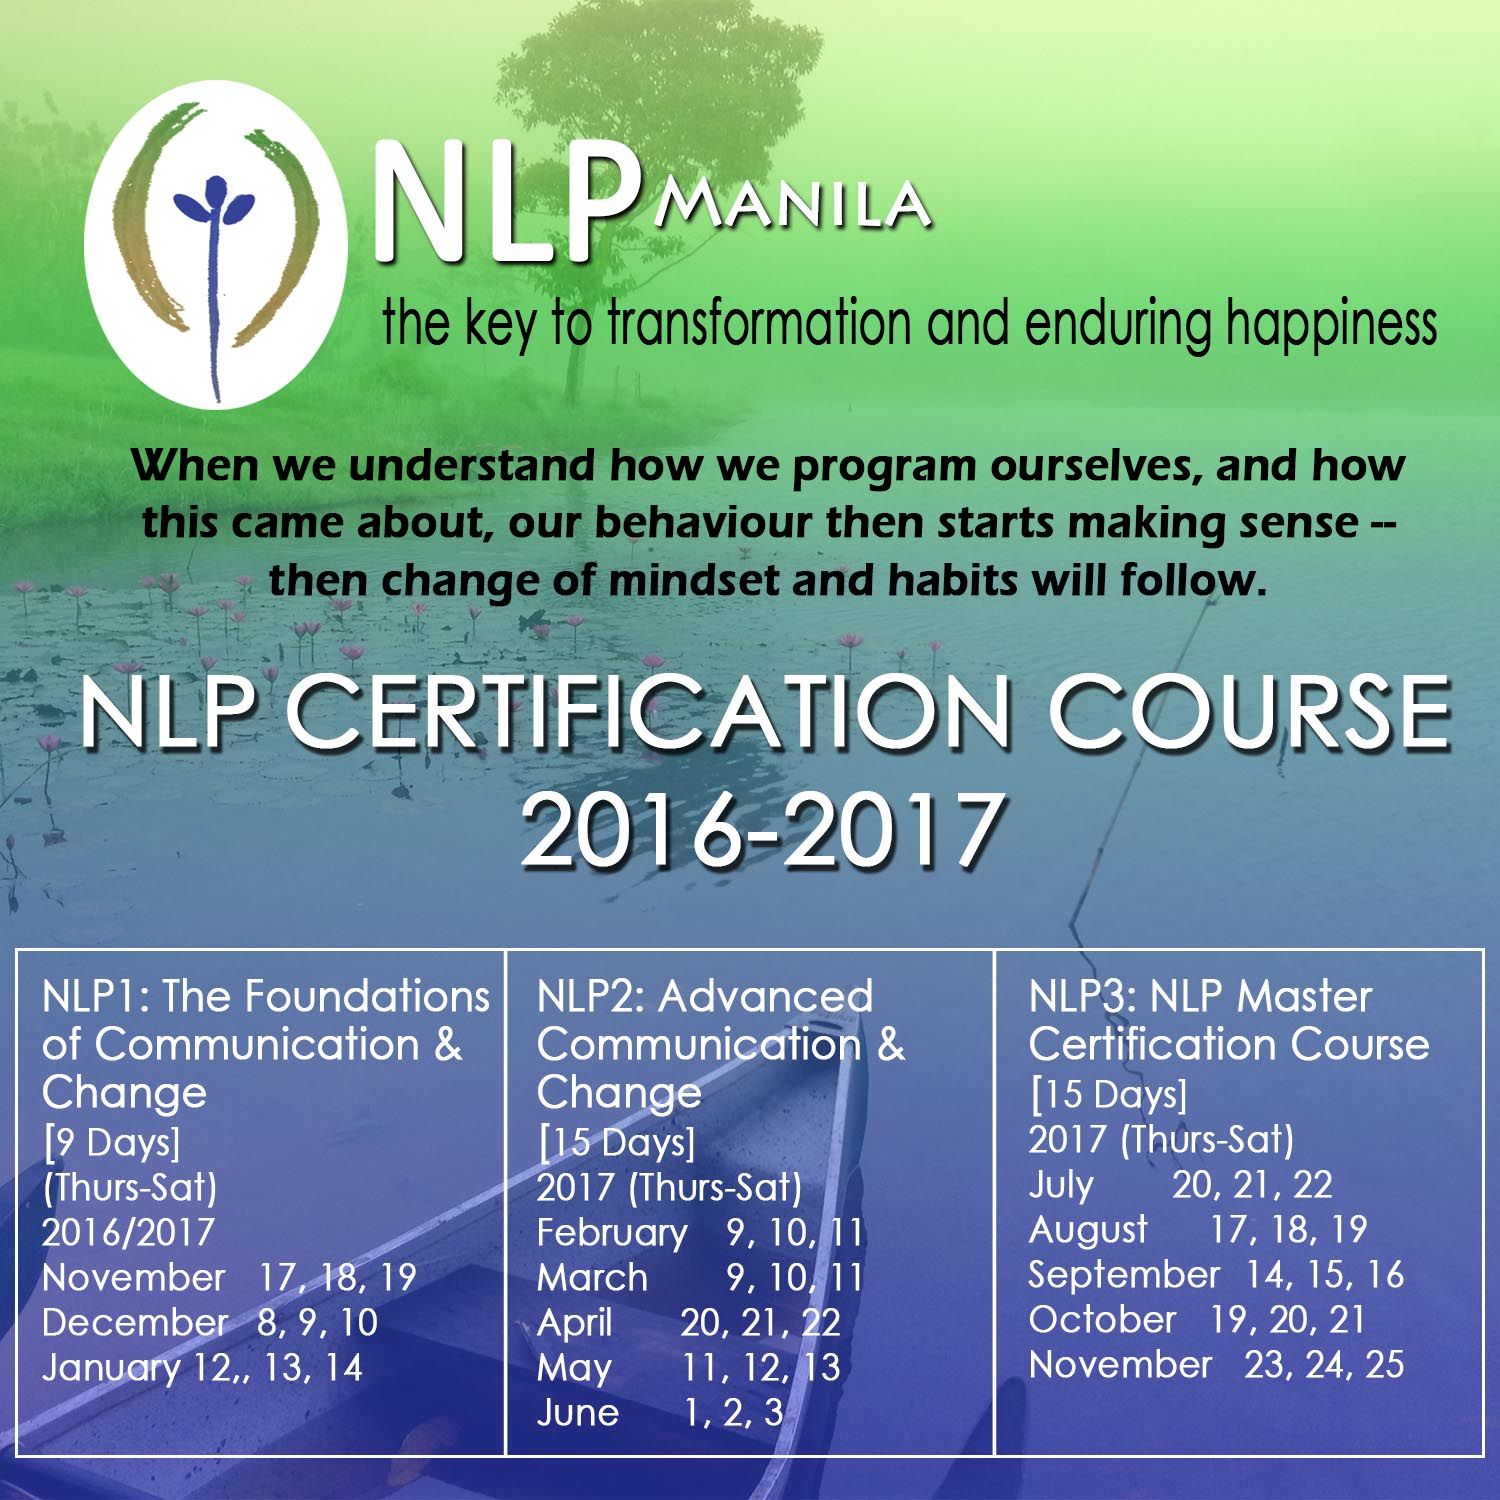 Healing pain and suffering nlp manila certification courses 2016 2017 xflitez Images